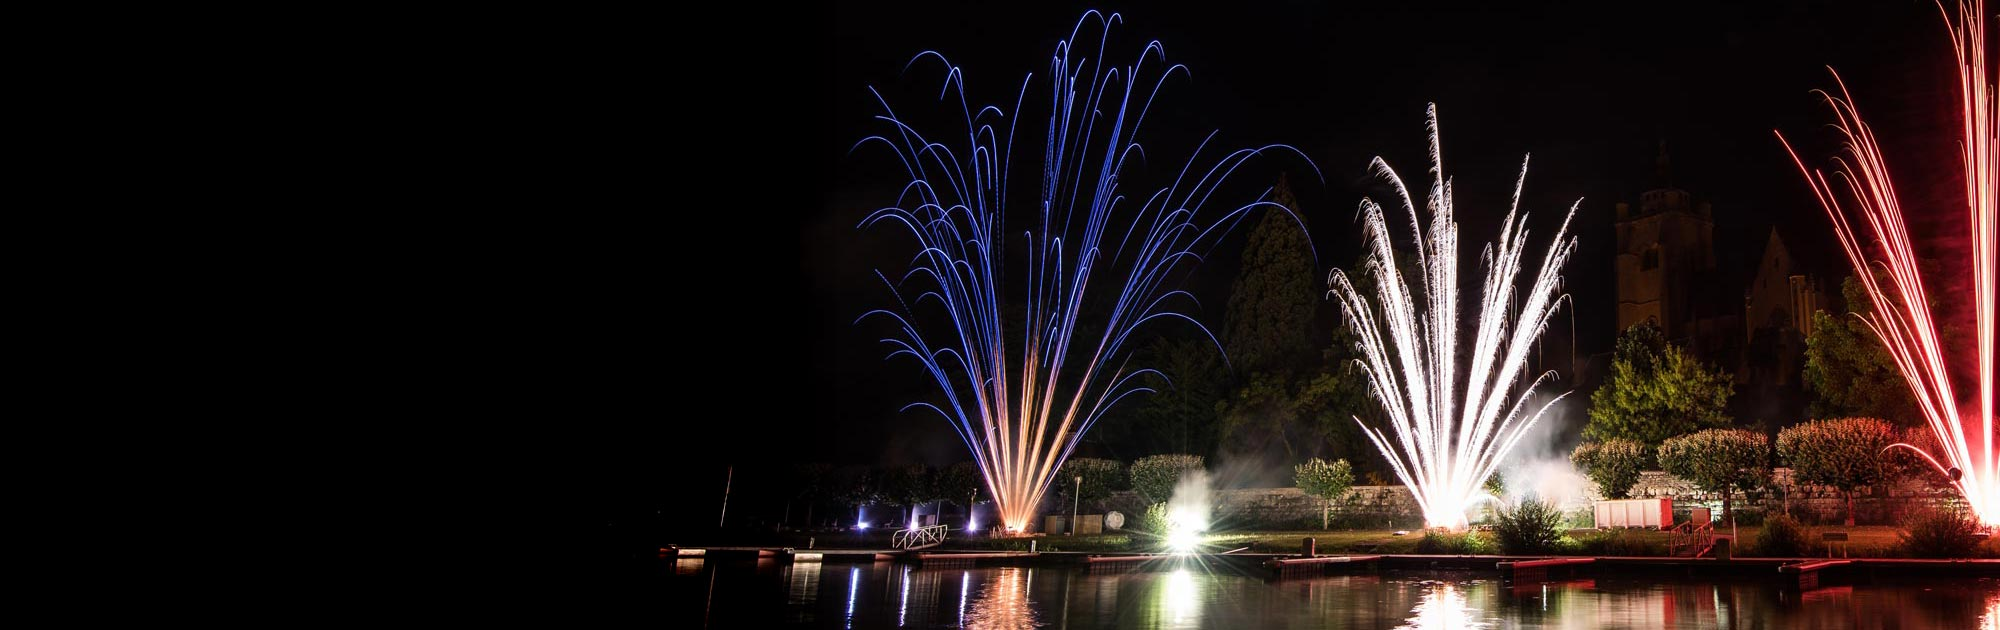 www.feux-artifice-collectivites.fr - Feux d'artifices - sans formation